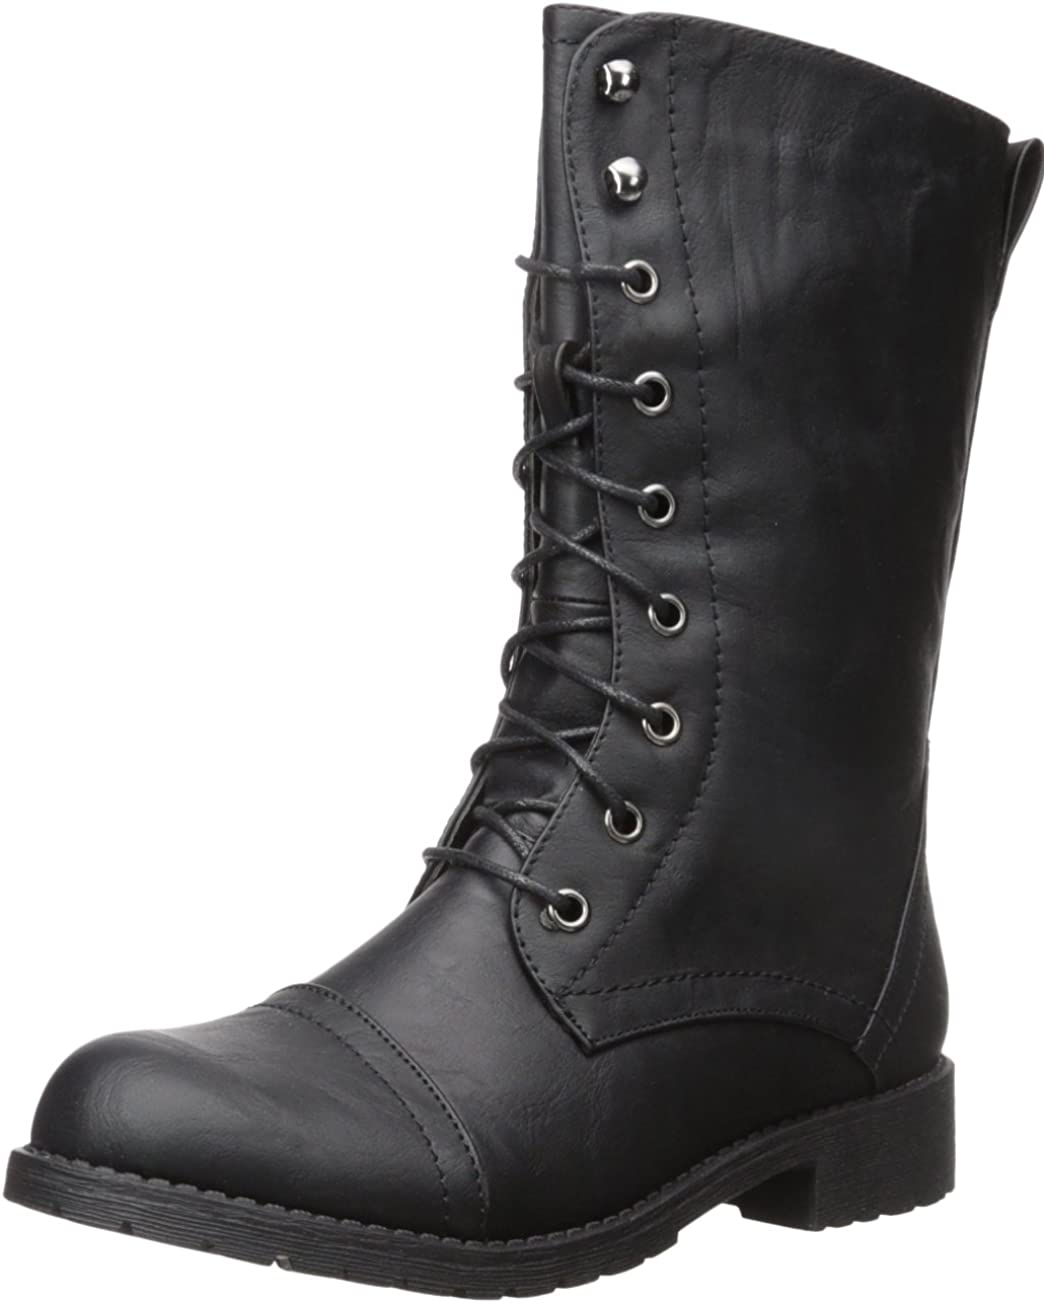 Nature Breeze Women's Casual Almond Toe Lace Up Zip Up Military Ankle Bootie - Black